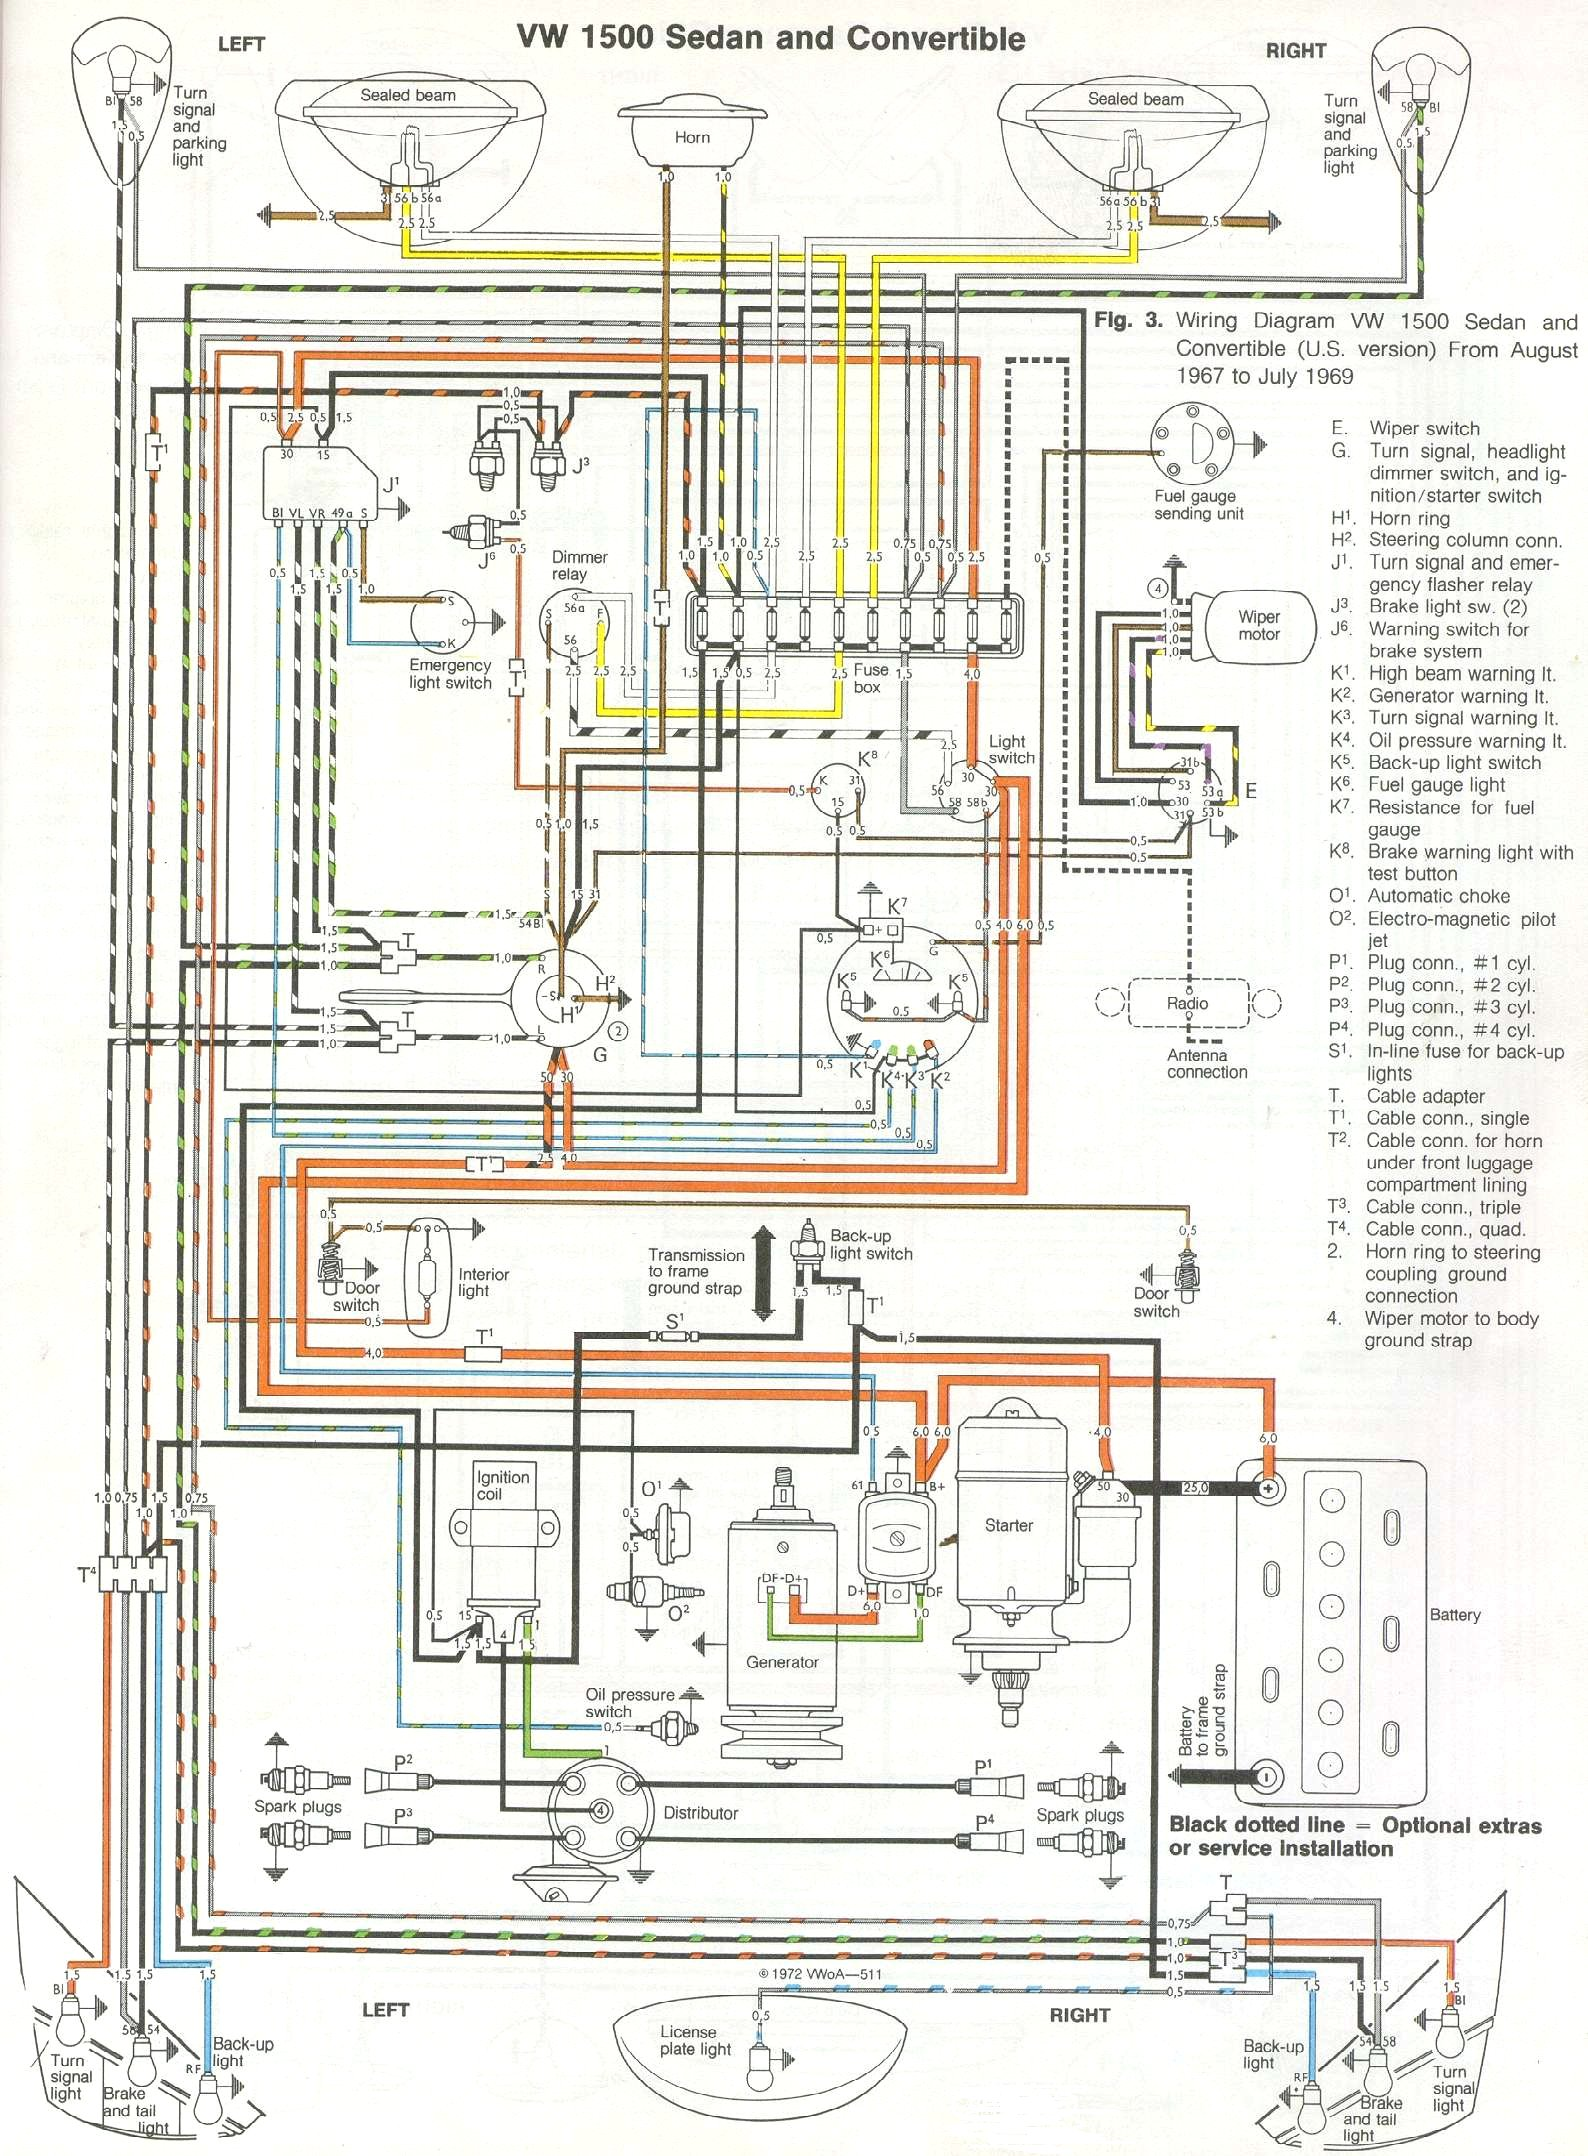 1970 Cadillac Wiring Harness Diagram All Kind Of Diagrams 1969 71 Beetle Thegoldenbug Com 1973 1992